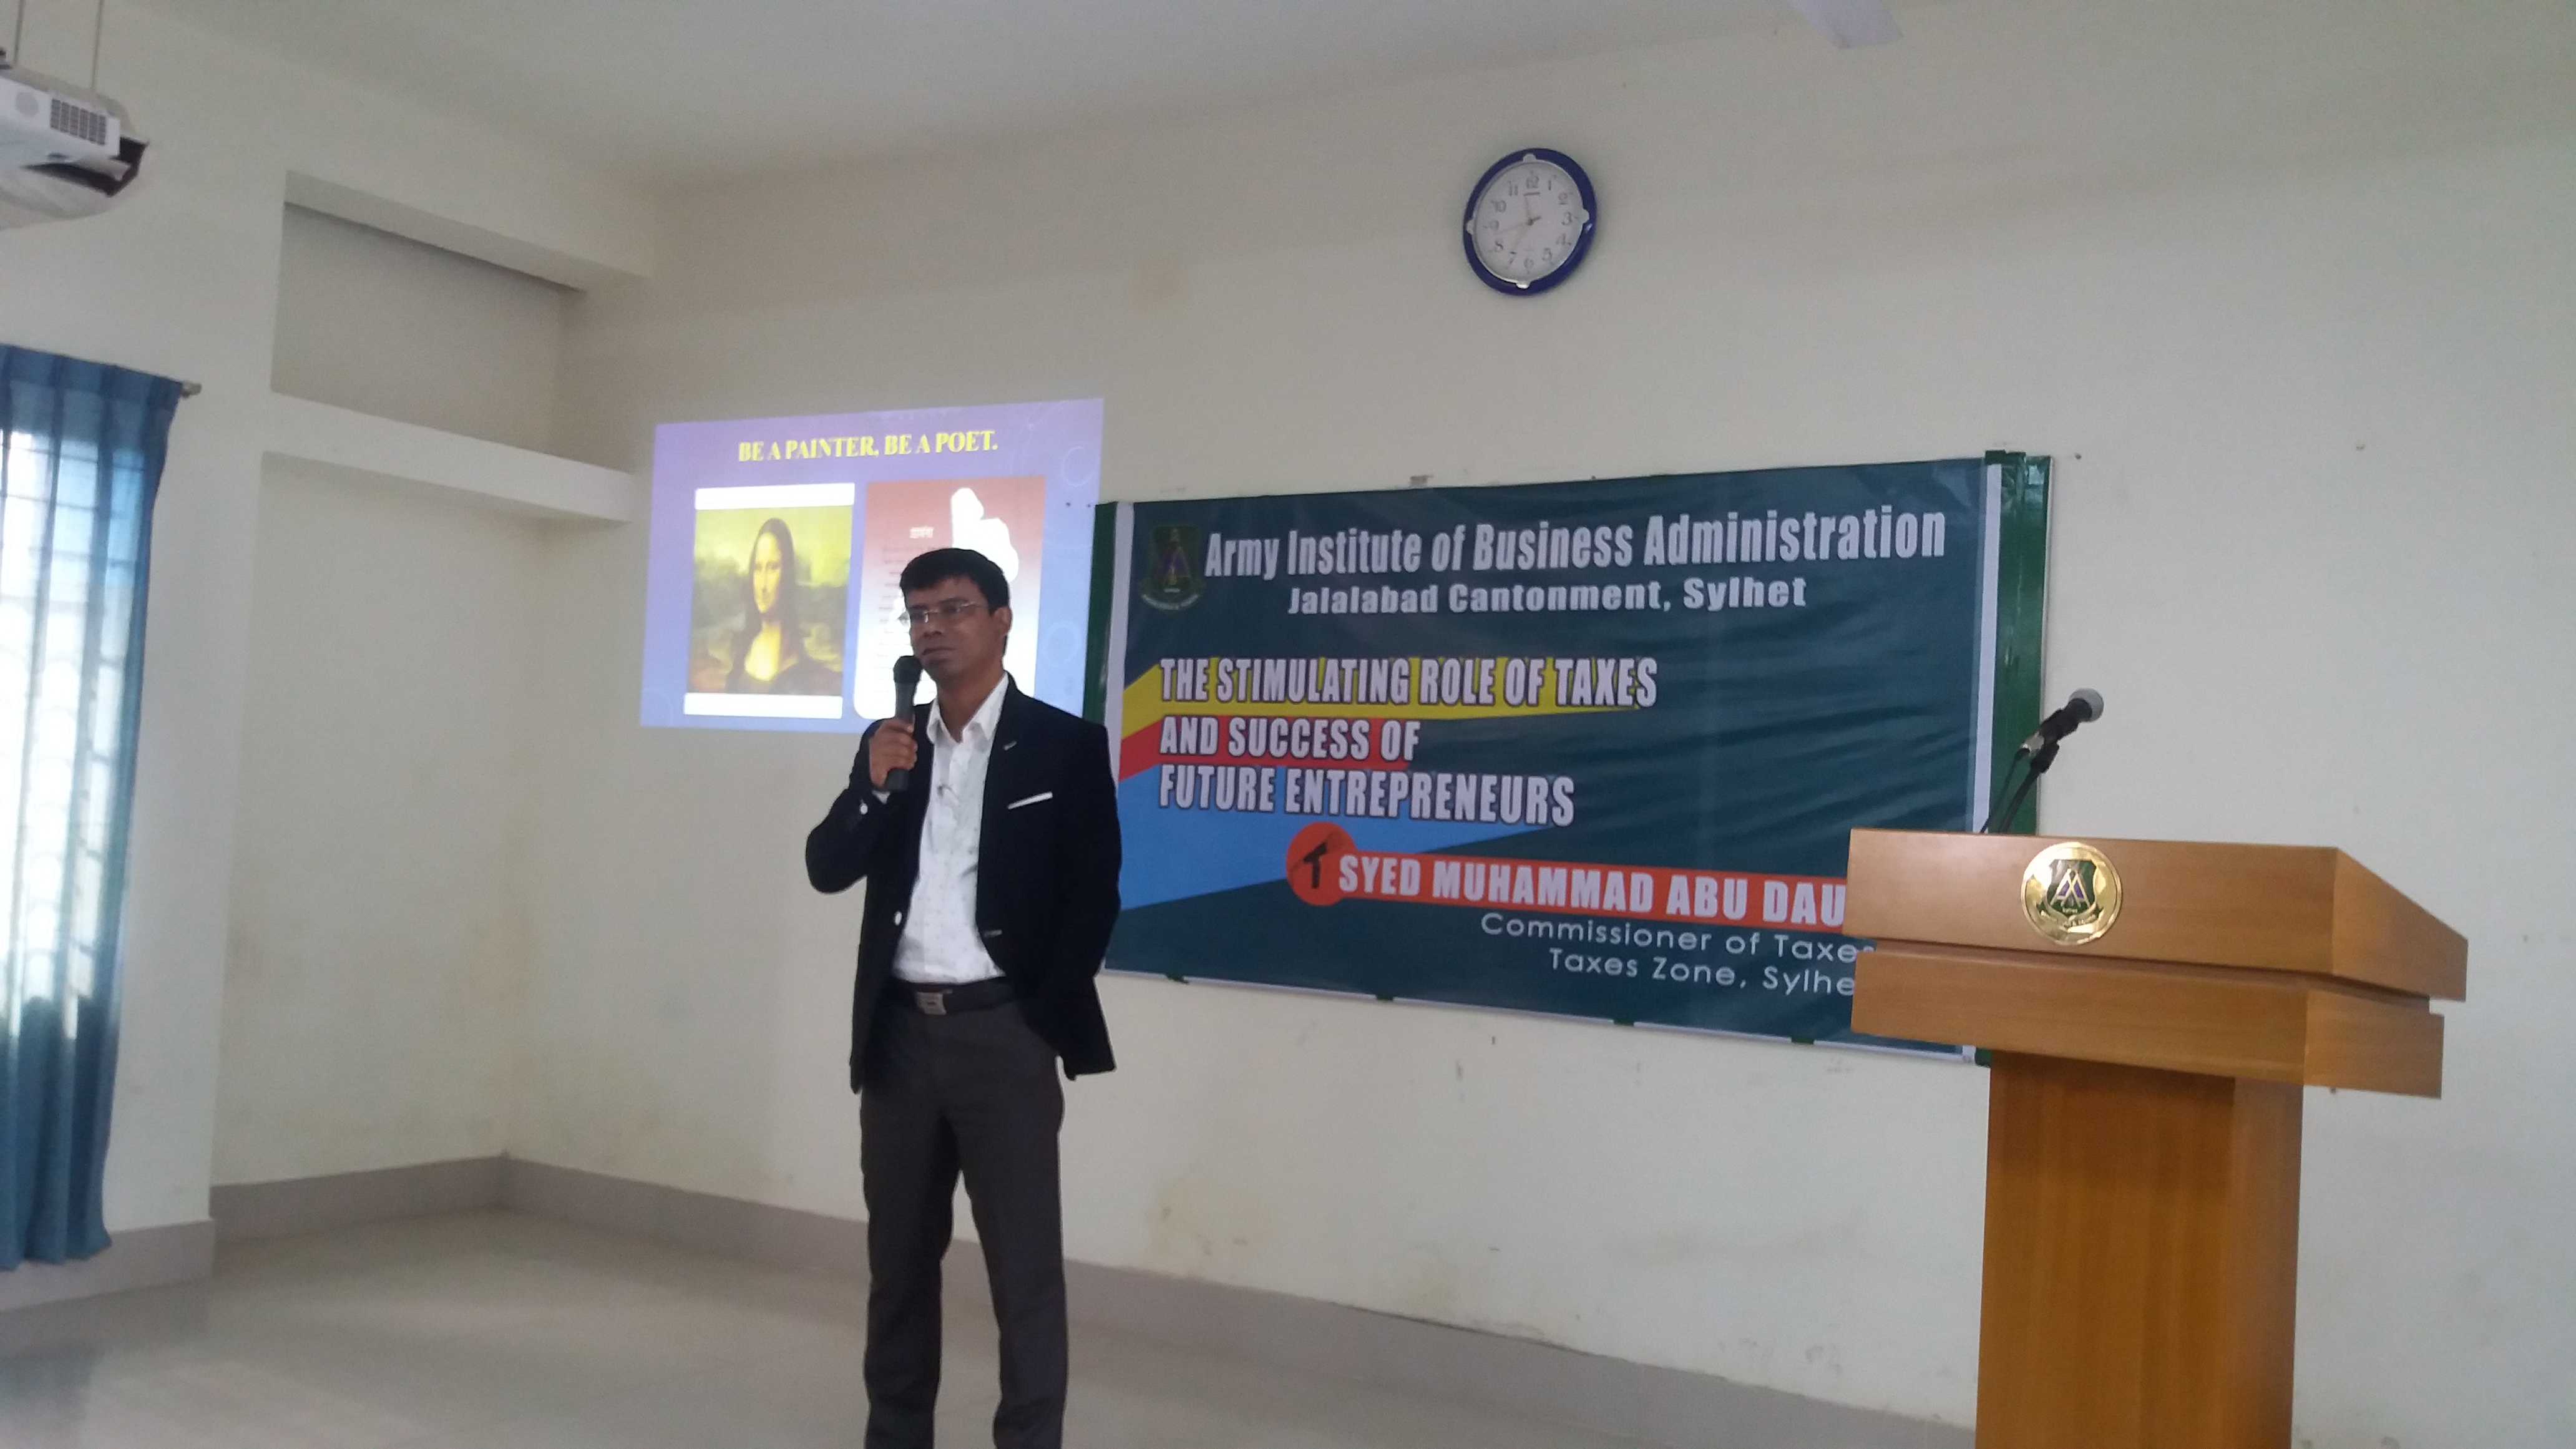 Session on Taxation conducting by Hon'ble Commissioner of Taxes at AIBA, Sylhet